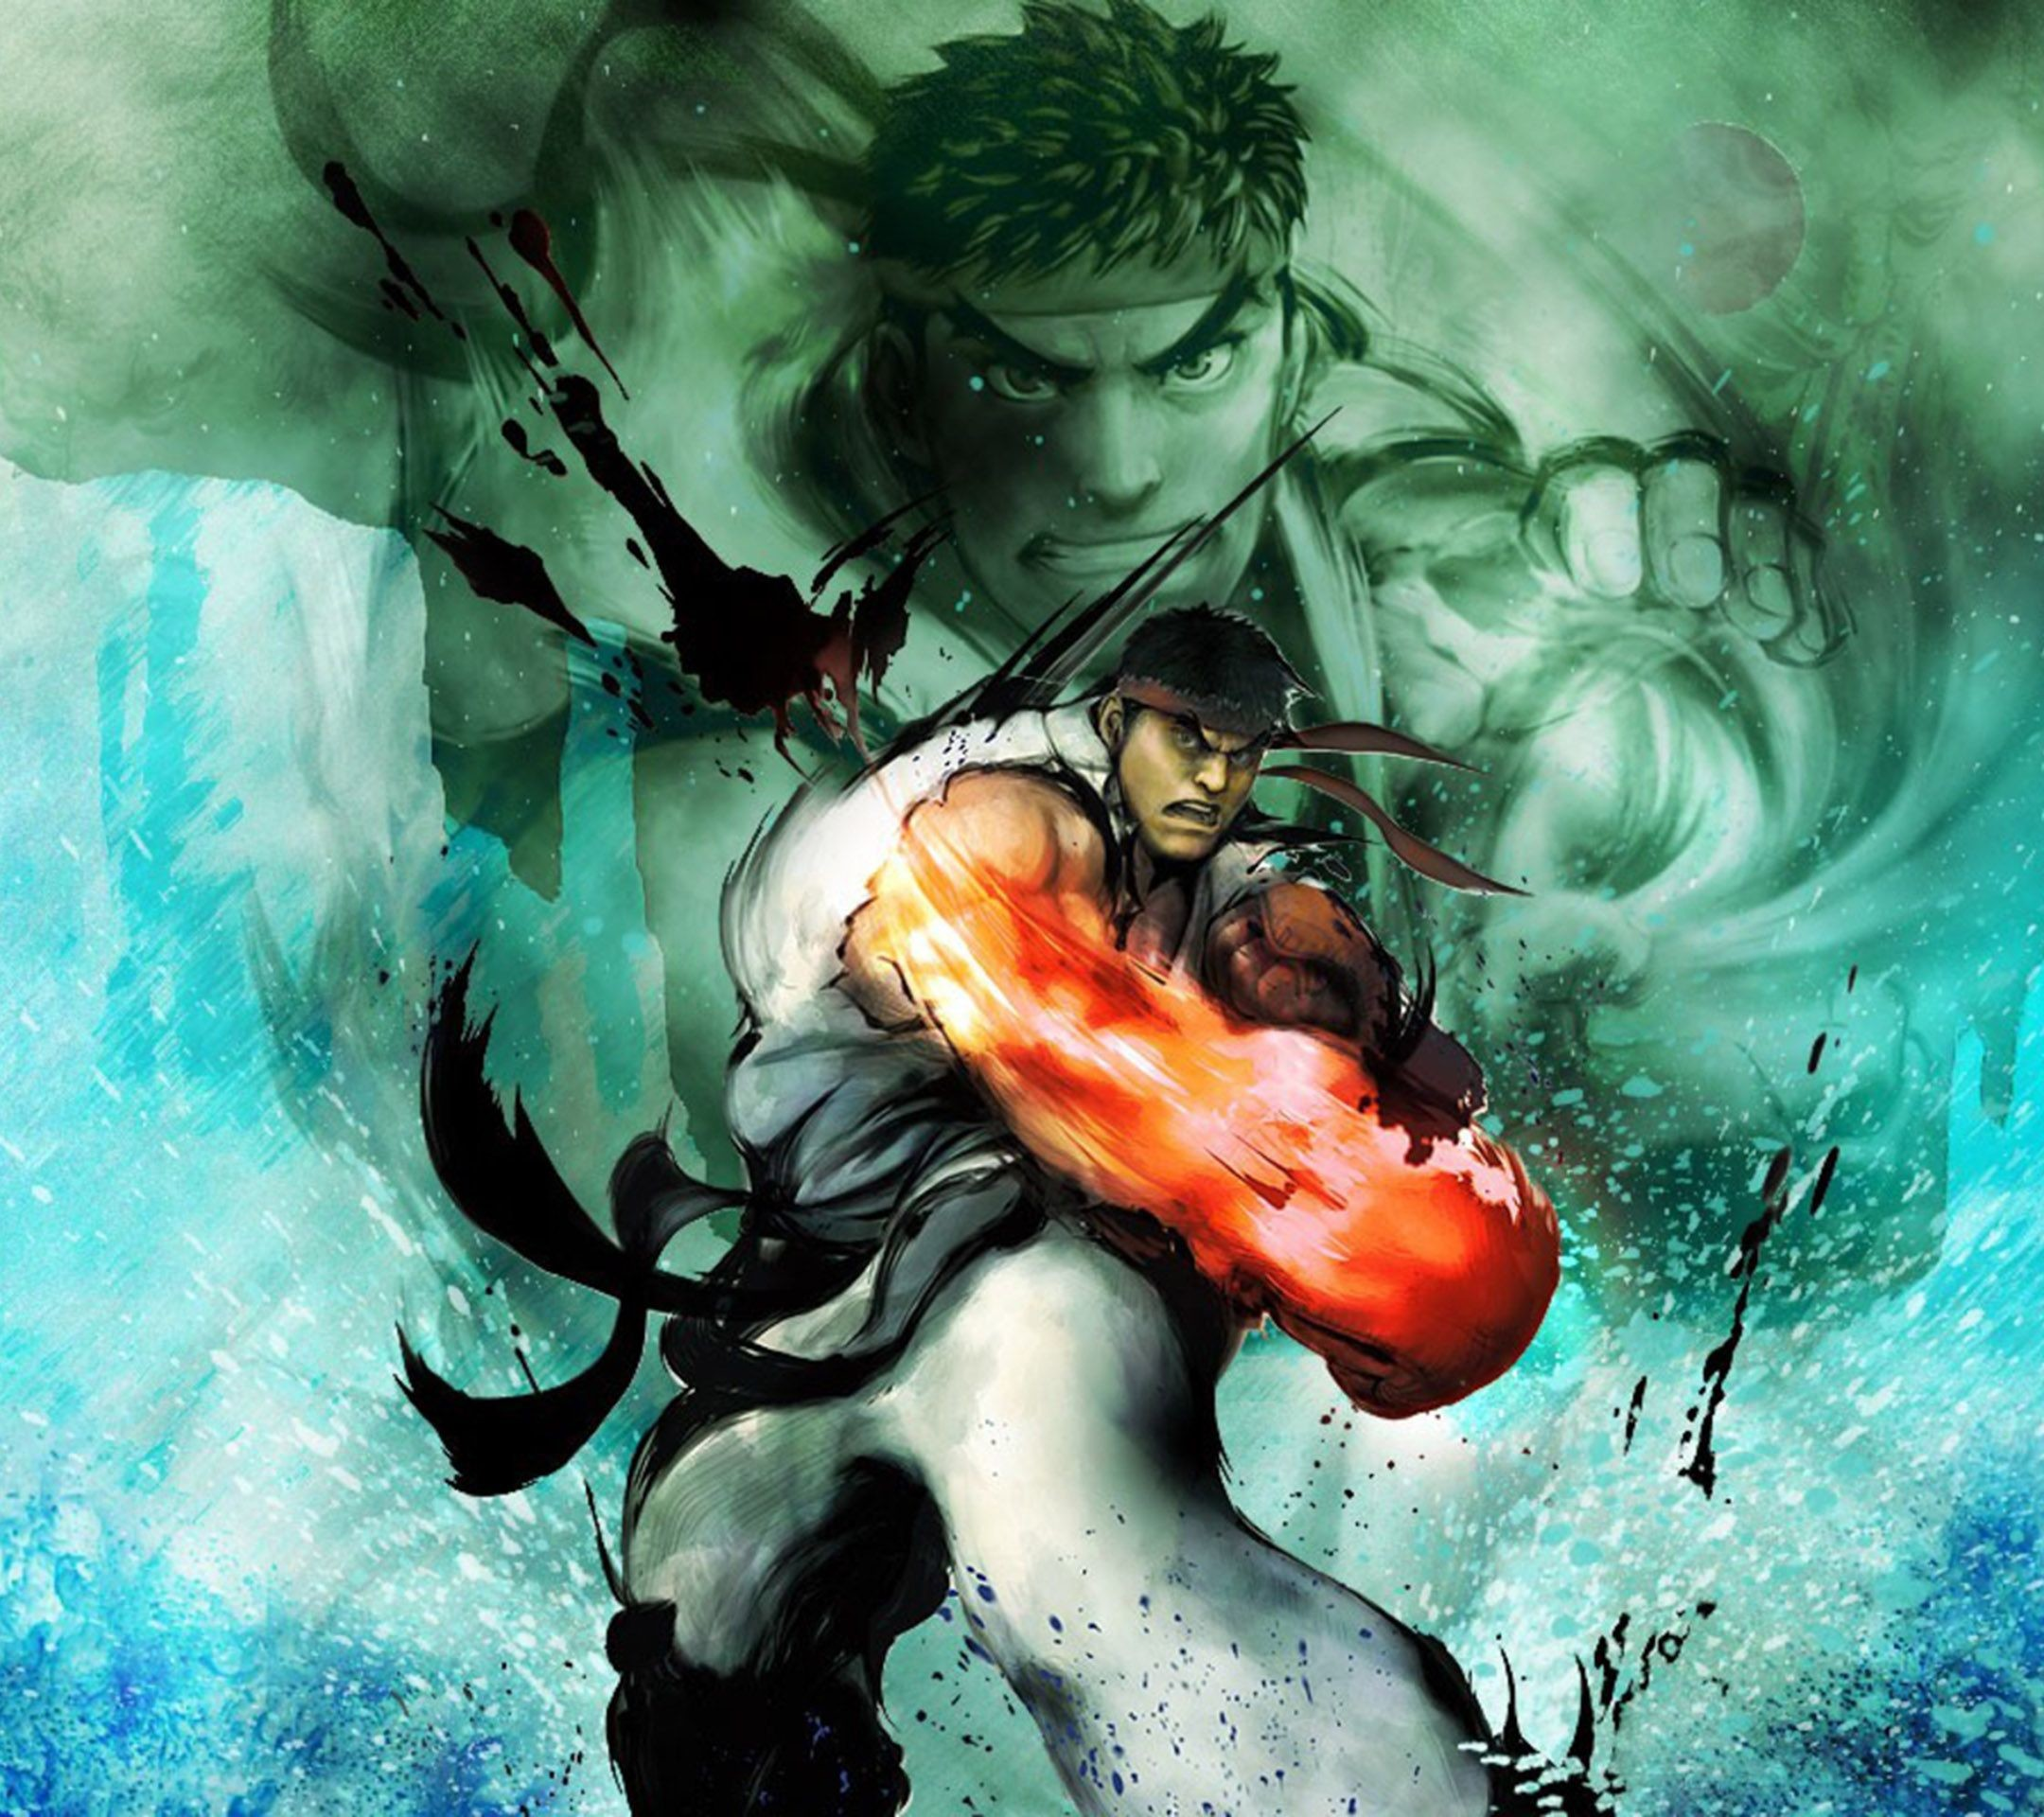 Res: 2160x1920, Akuma Street Fighter- Tap to see more of the top legendary street fighter  wallpapers!